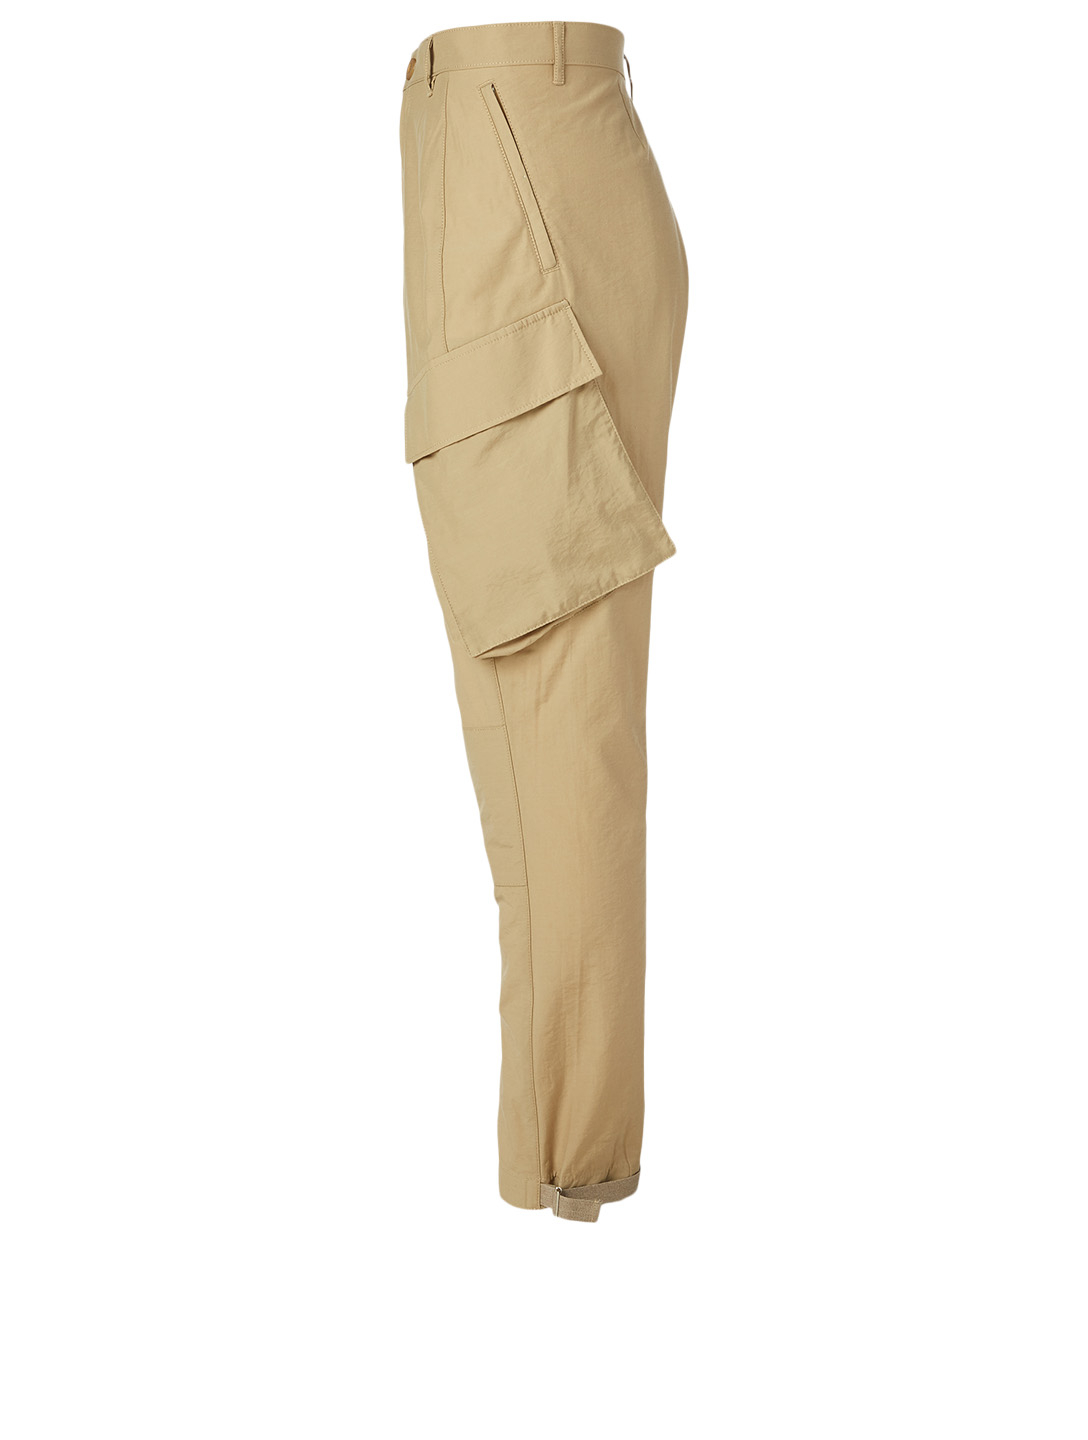 GIVENCHY Technical Cotton Pants With Multipockets Men's Beige